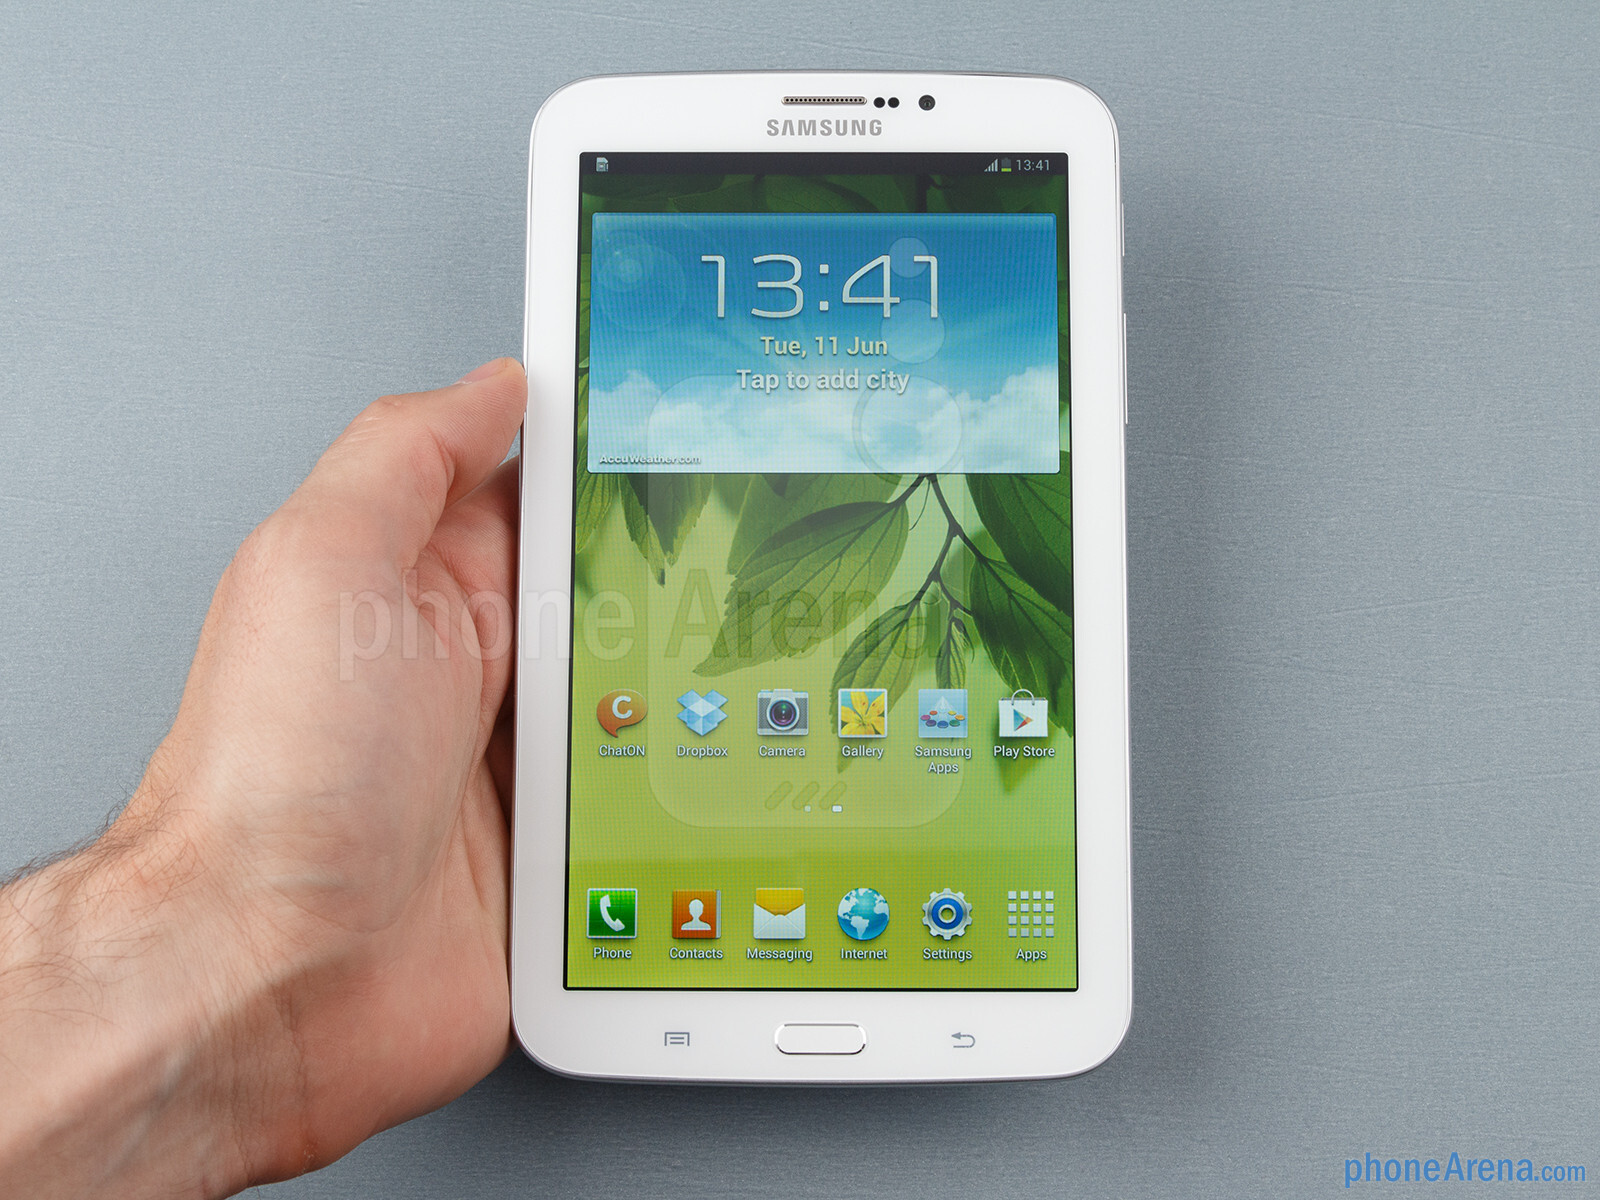 Samsung Galaxy Tab 3 7-inch Preview